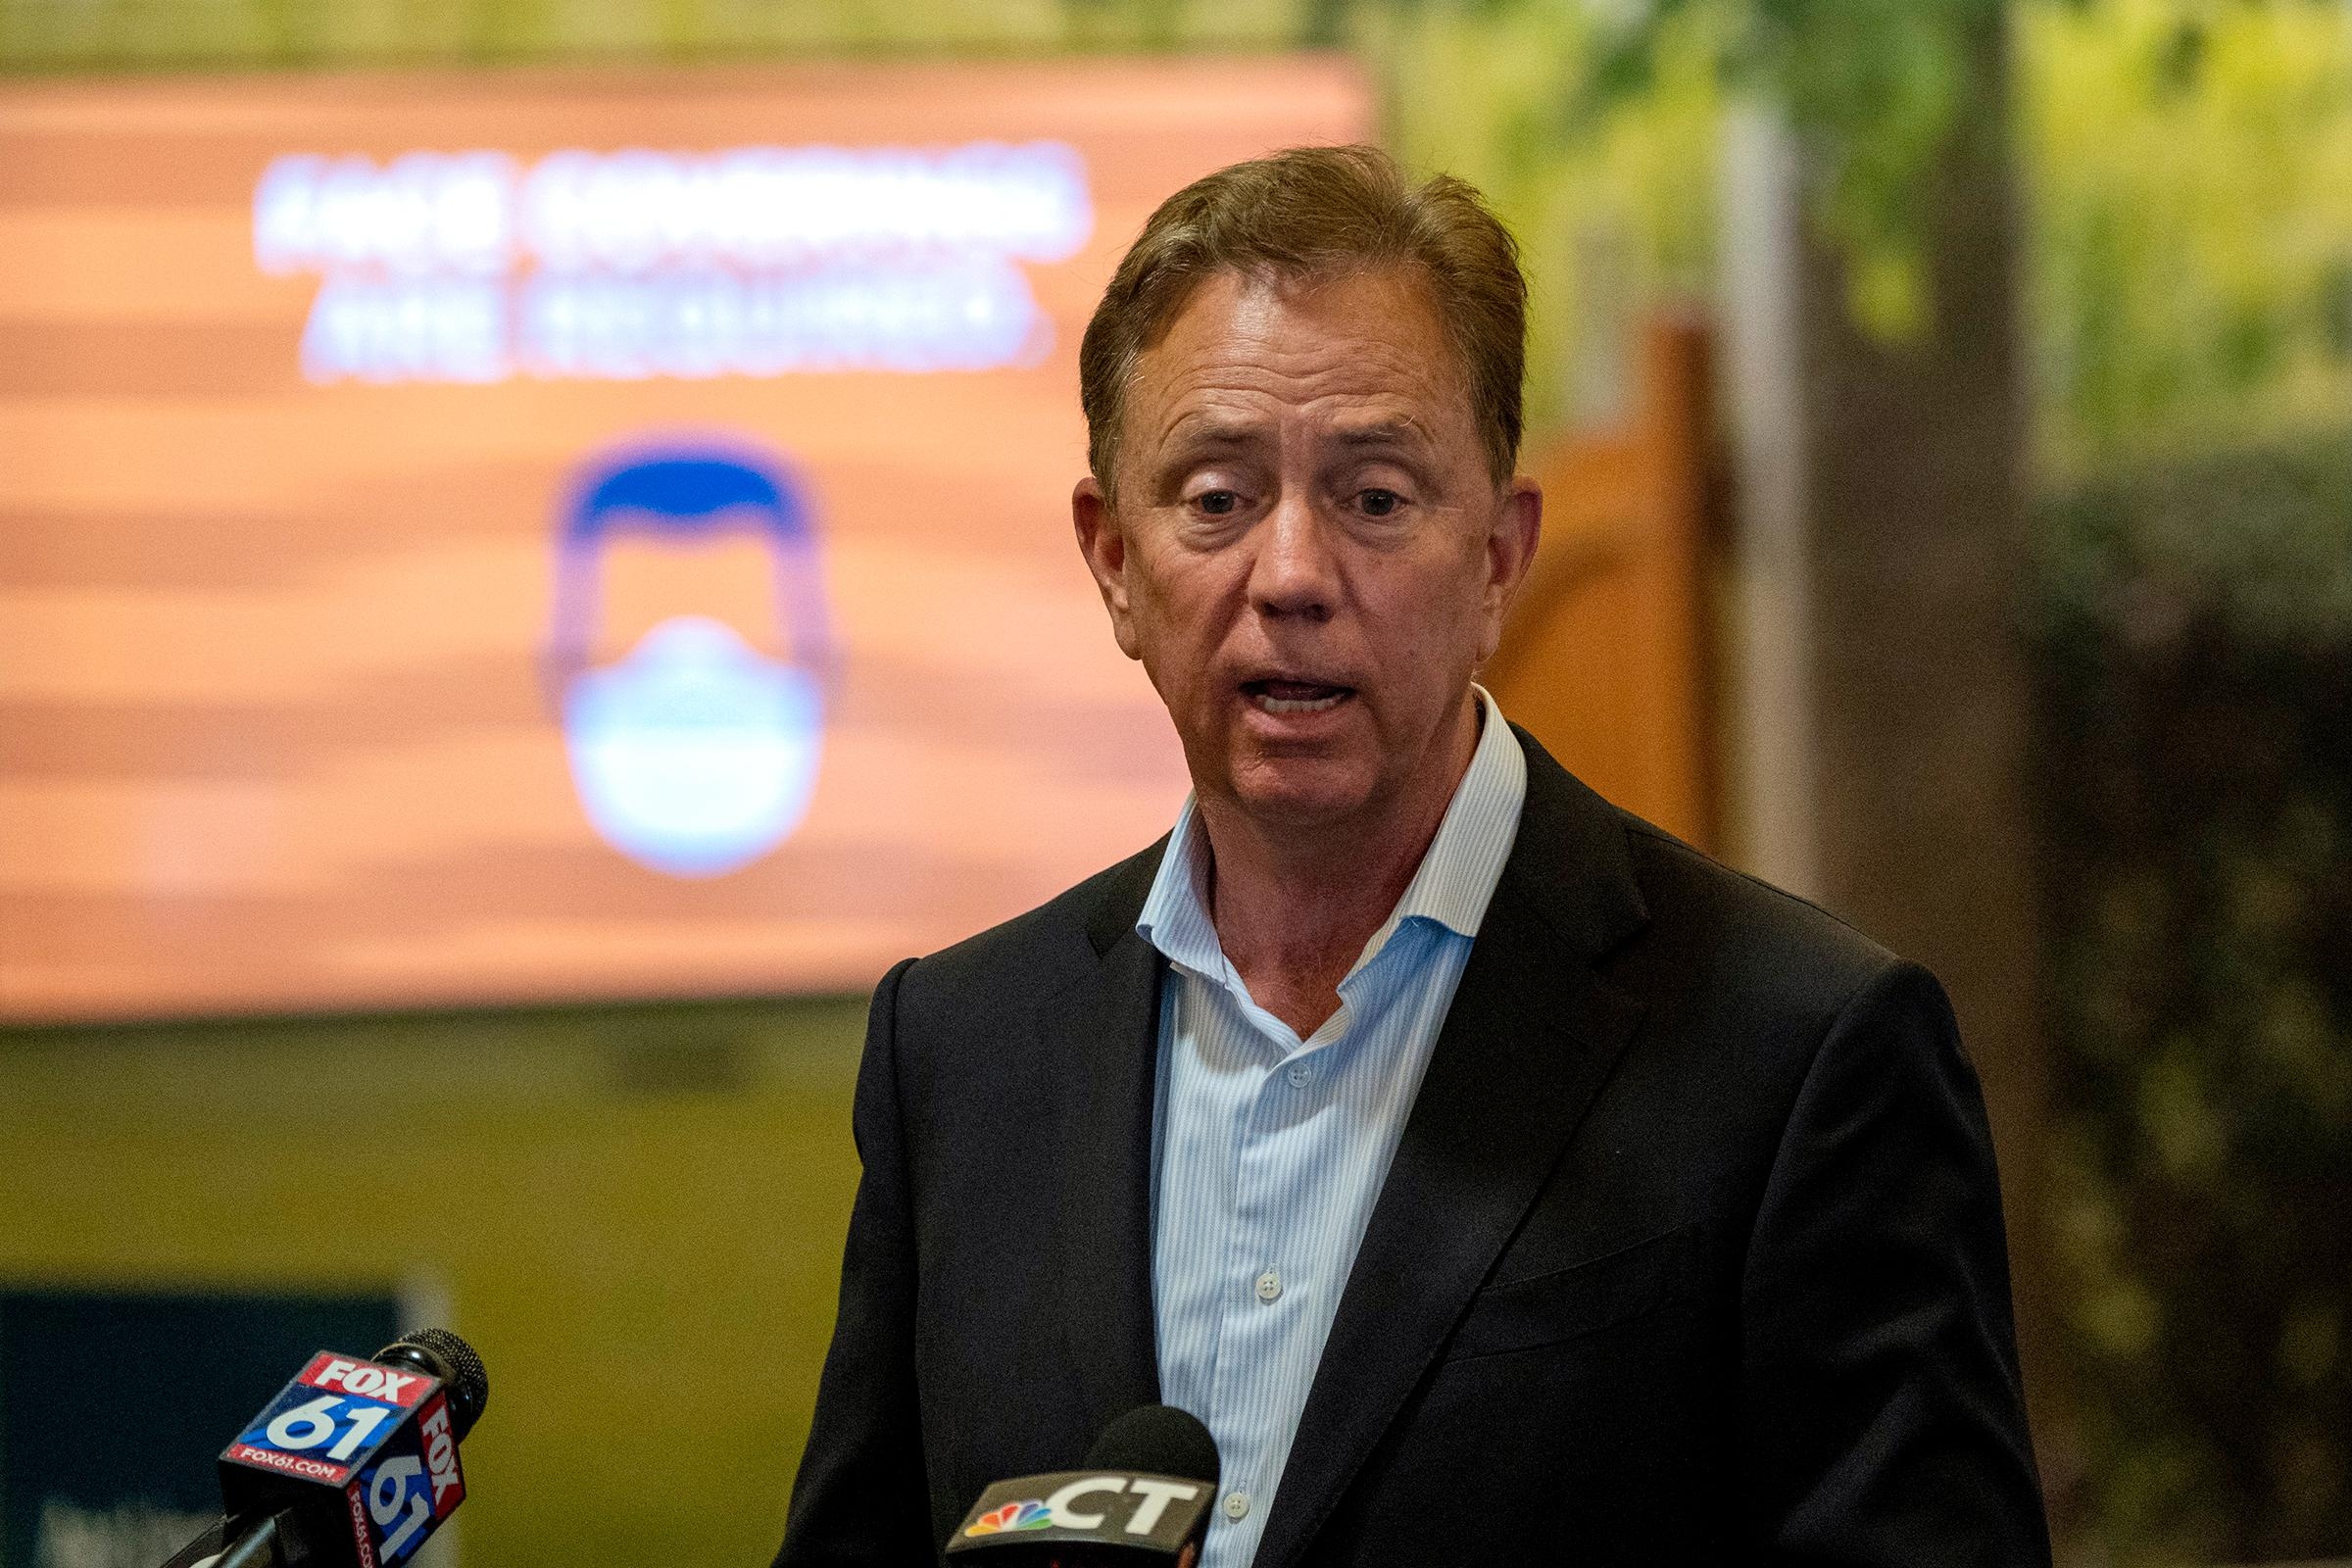 As Connecticut tries to avoid second wave of COVID-19, Lamont promotes quarantine guidelines